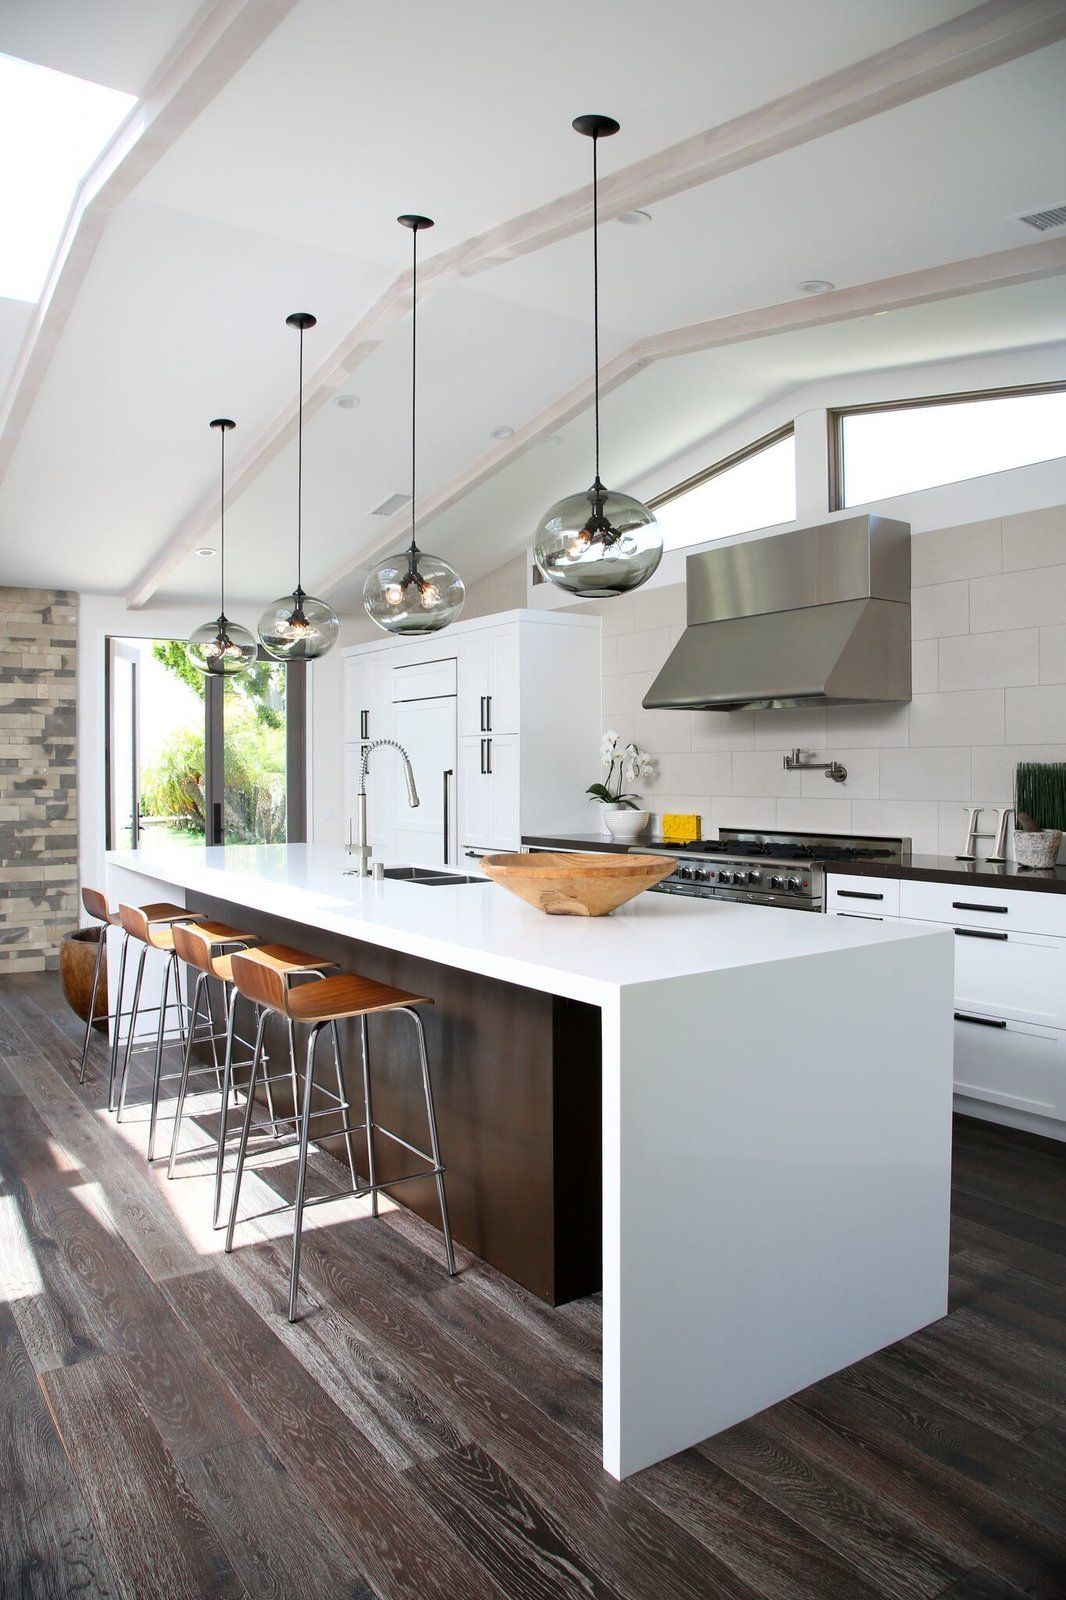 10 Open Kitchen Solutions That Will Get Things Cooking Kitchen Island Lighting Modern Kitchen Island Lighting Contemporary Kitchen Island